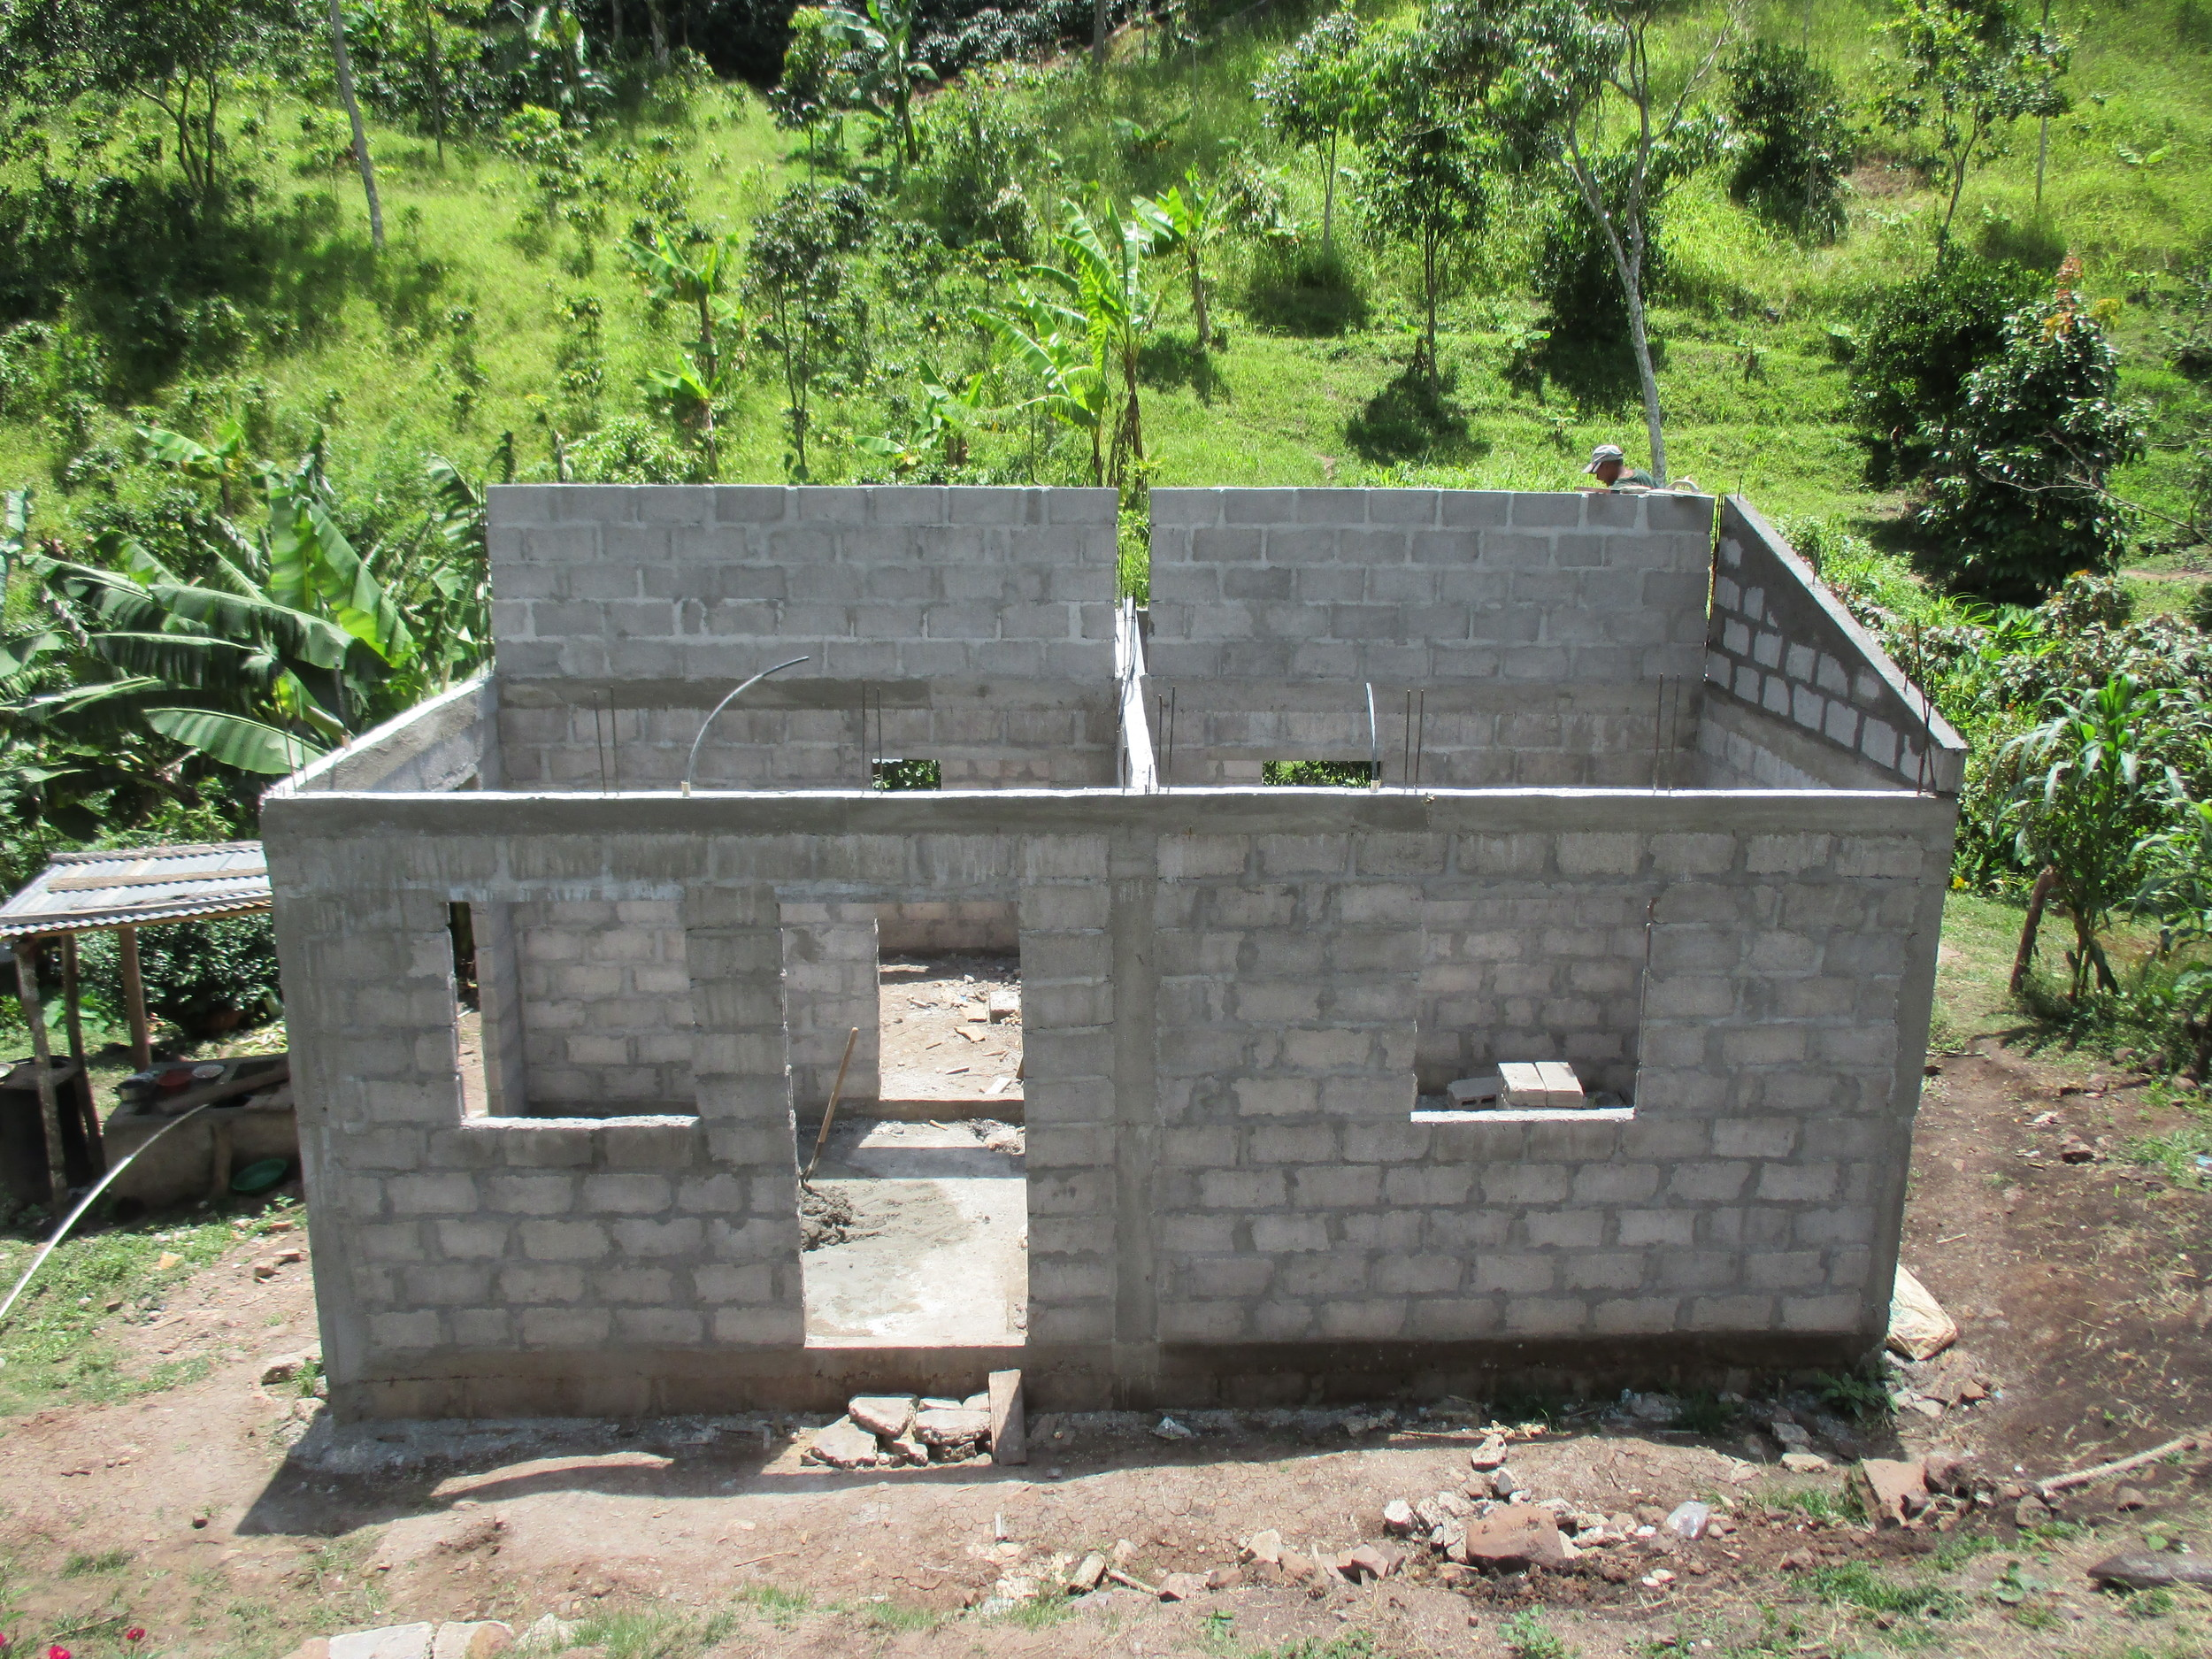 New house under construction - photo by Franklin Paz